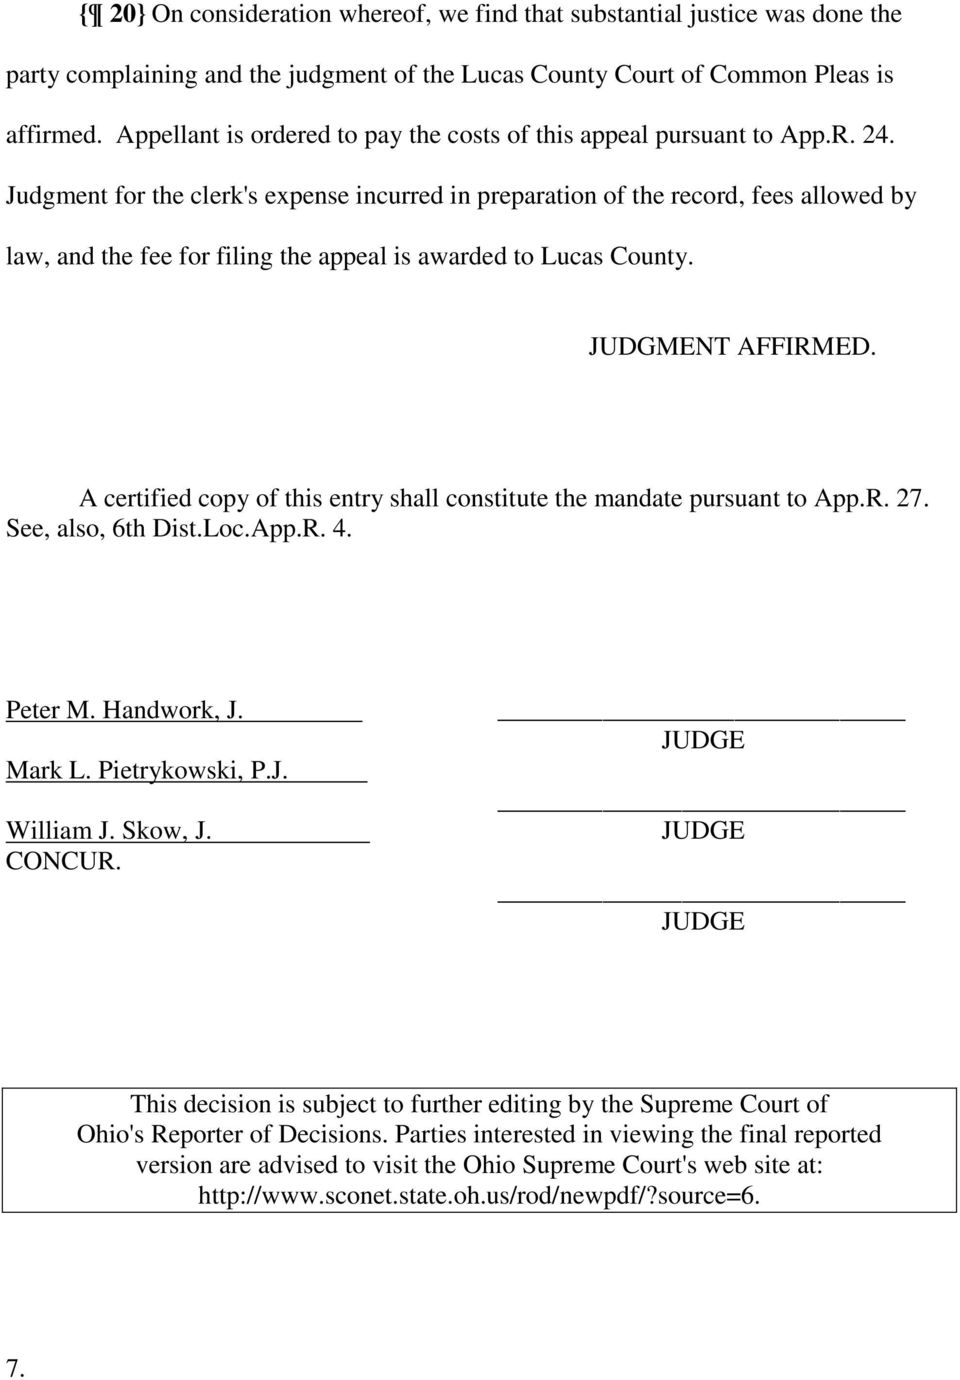 Judgment for the clerk's expense incurred in preparation of the record, fees allowed by law, and the fee for filing the appeal is awarded to Lucas County. JUDGMENT AFFIRMED.